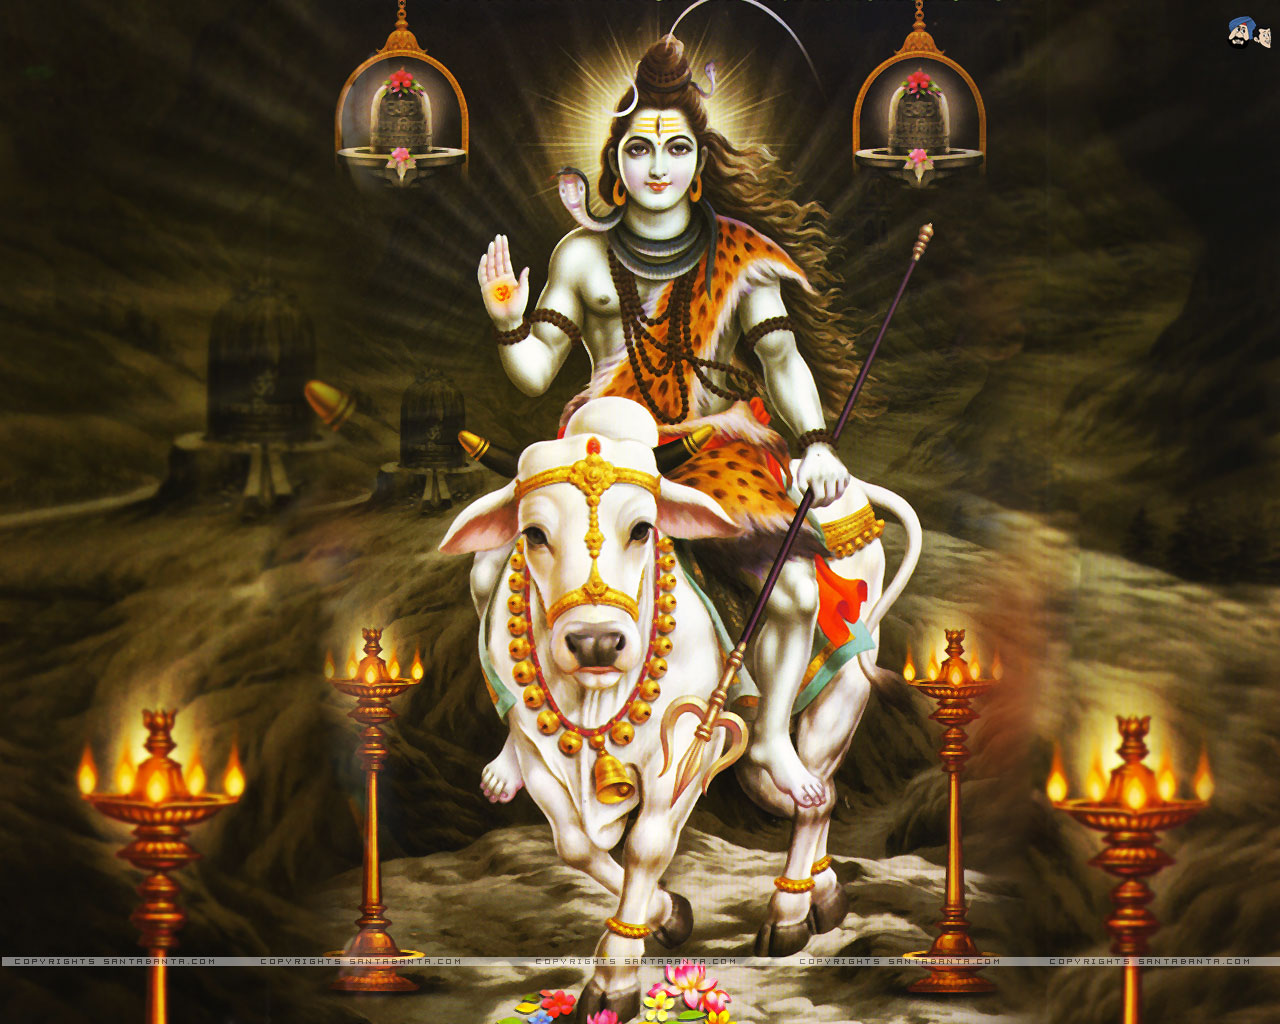 Shiva Wallpaper Hindu Wallpaper Lord Shiva Ji Wallpapers: The Pursuit Of Bliss: Shivratri (The Great Night Of Shiva